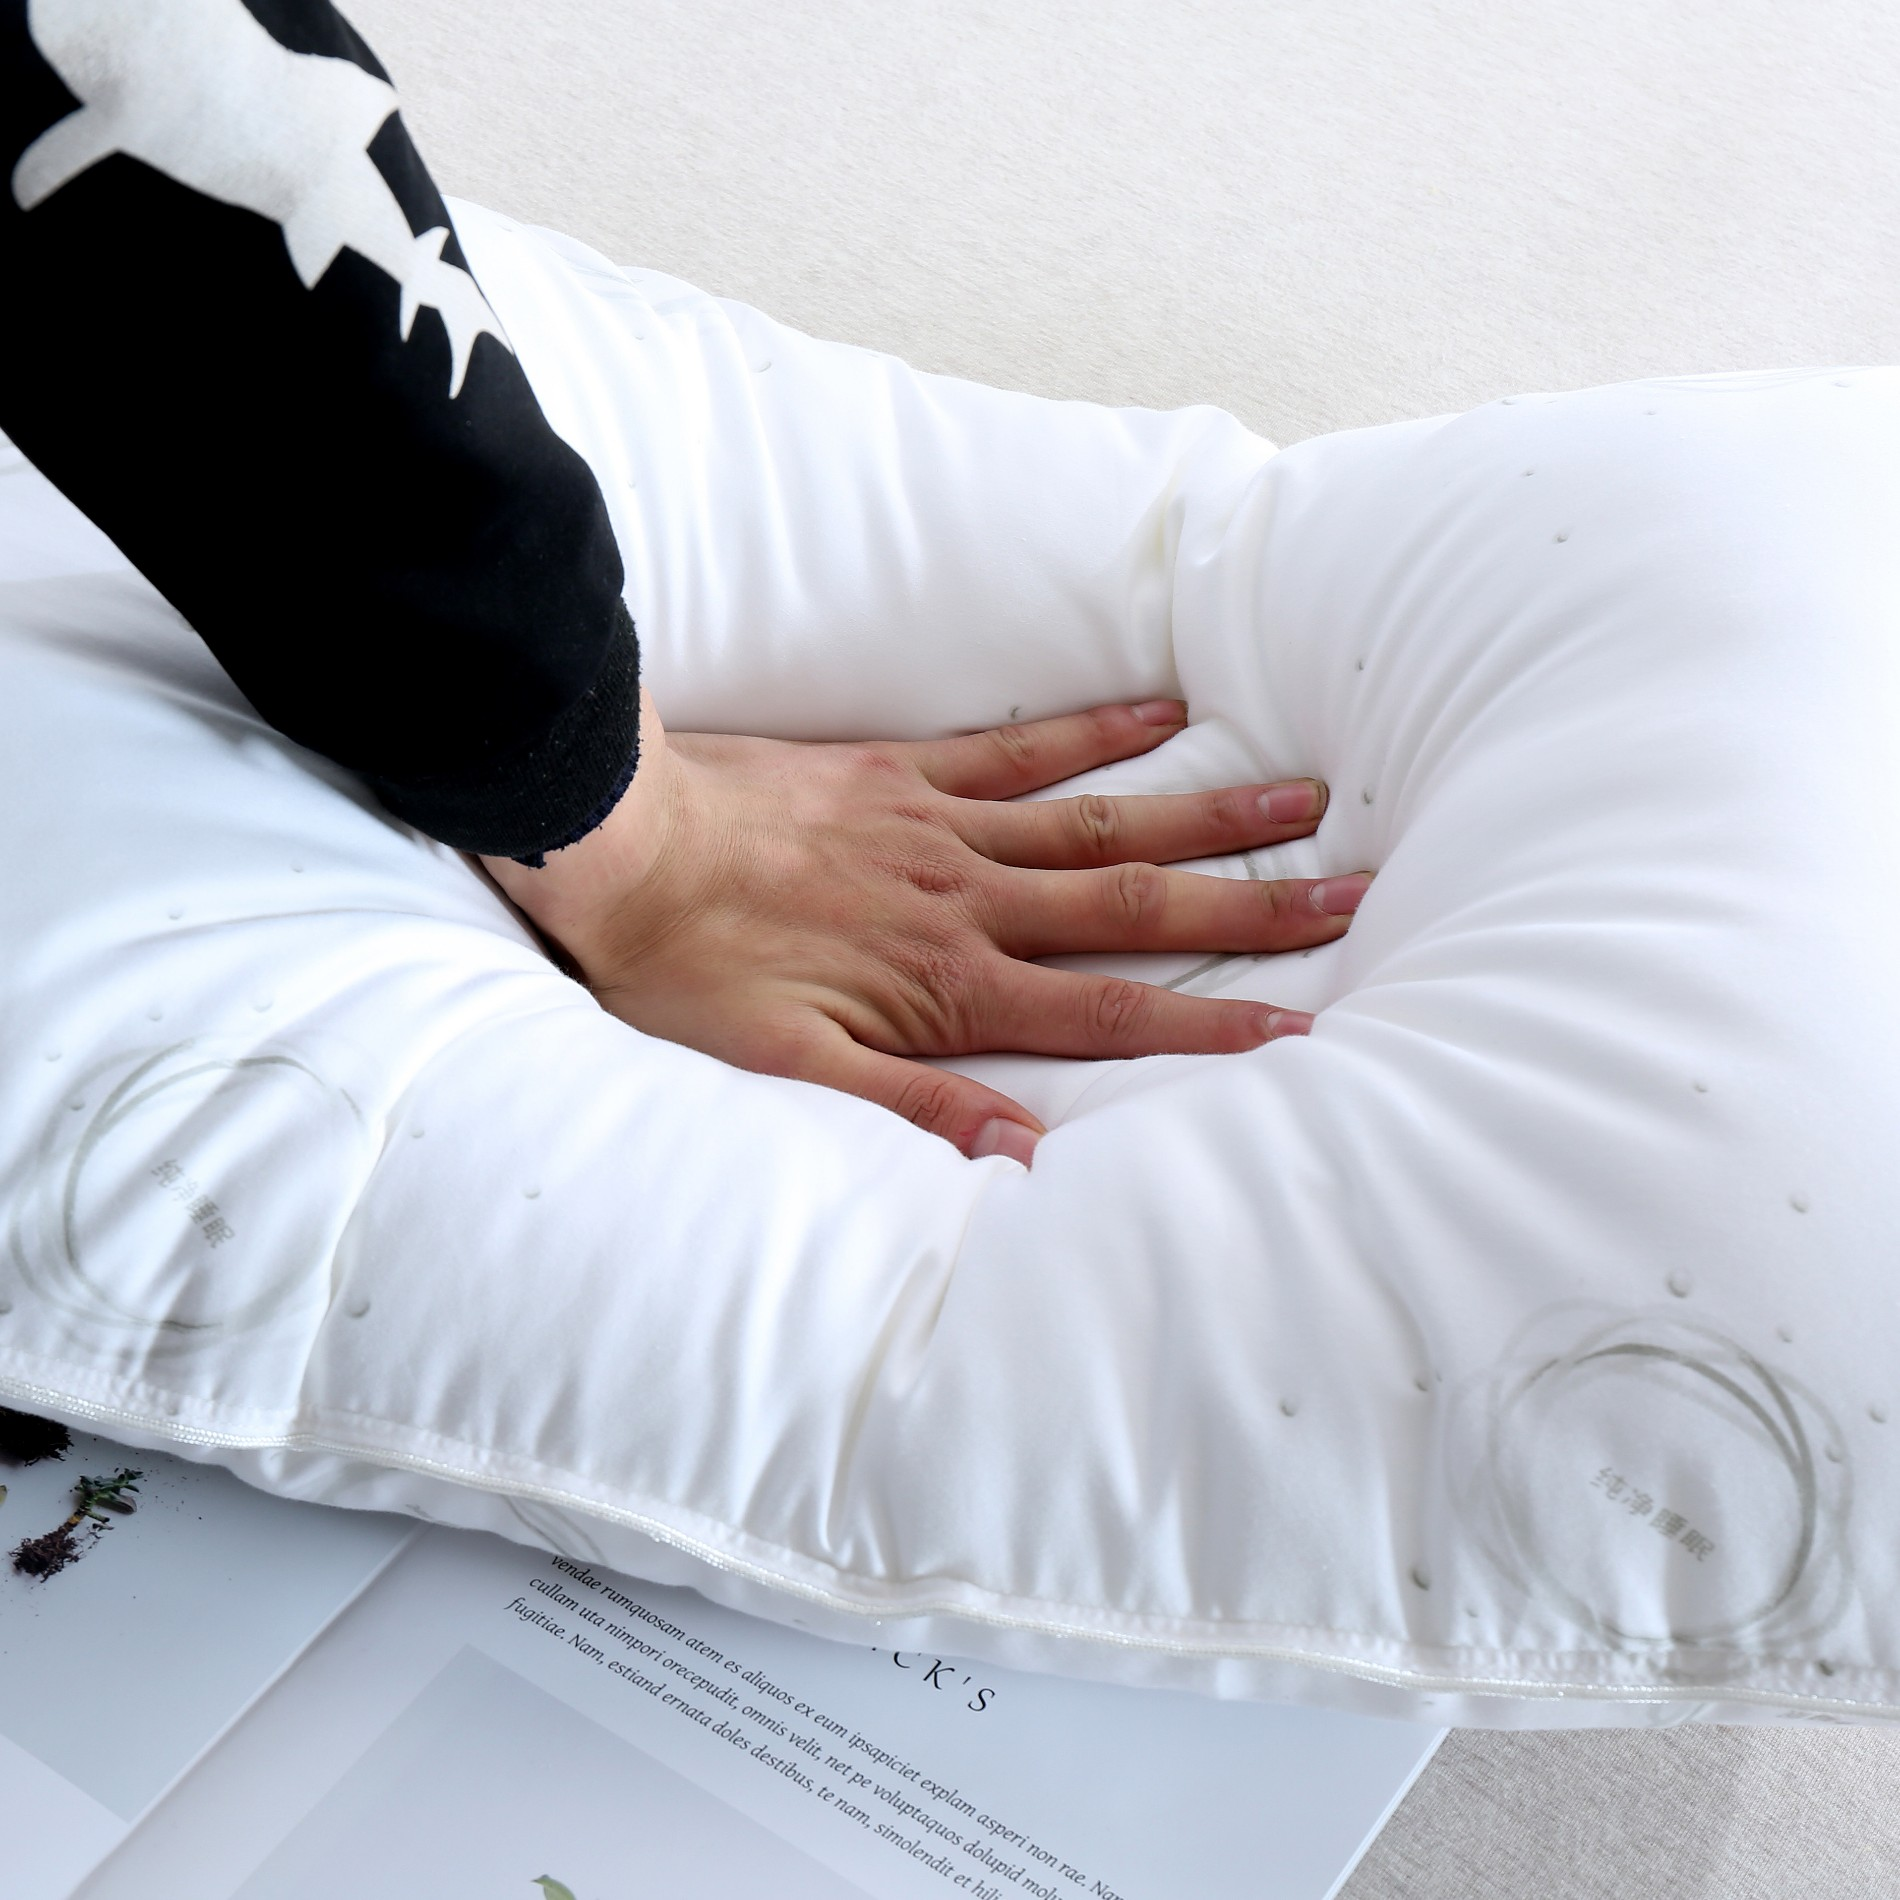 Hotel Bed Pillows Manufacturers, Hotel Bed Pillows Factory, Supply Hotel Bed Pillows